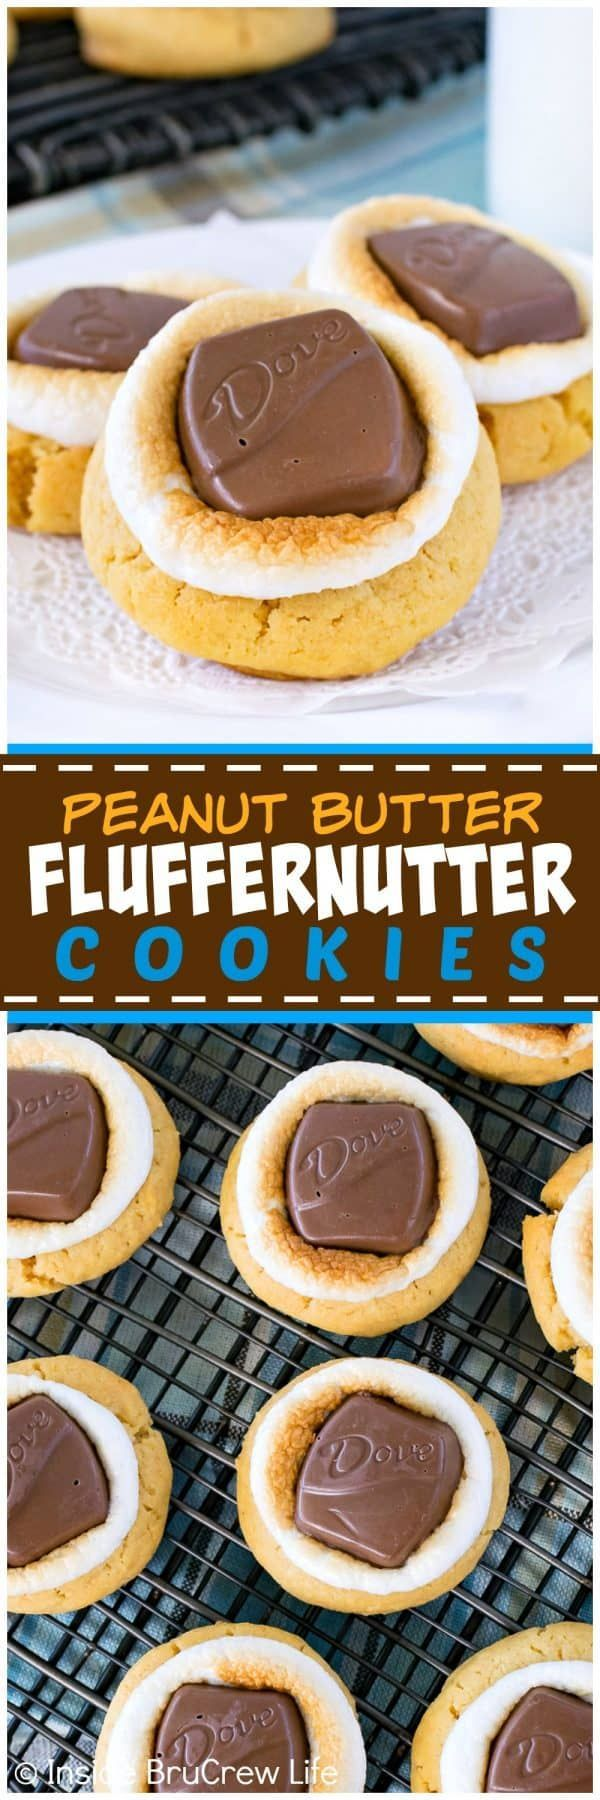 Peanut Butter Fluffernutter Cookies - soft peanut butter cookies topped with toasted marshmallows and peanut butter candy bars makes a great snack to go with milk. Easy recipe for after school or cookie jars!  #cookies #peanutbutter #marshmallow #chocolate #afterschoolsnack #cookiejar